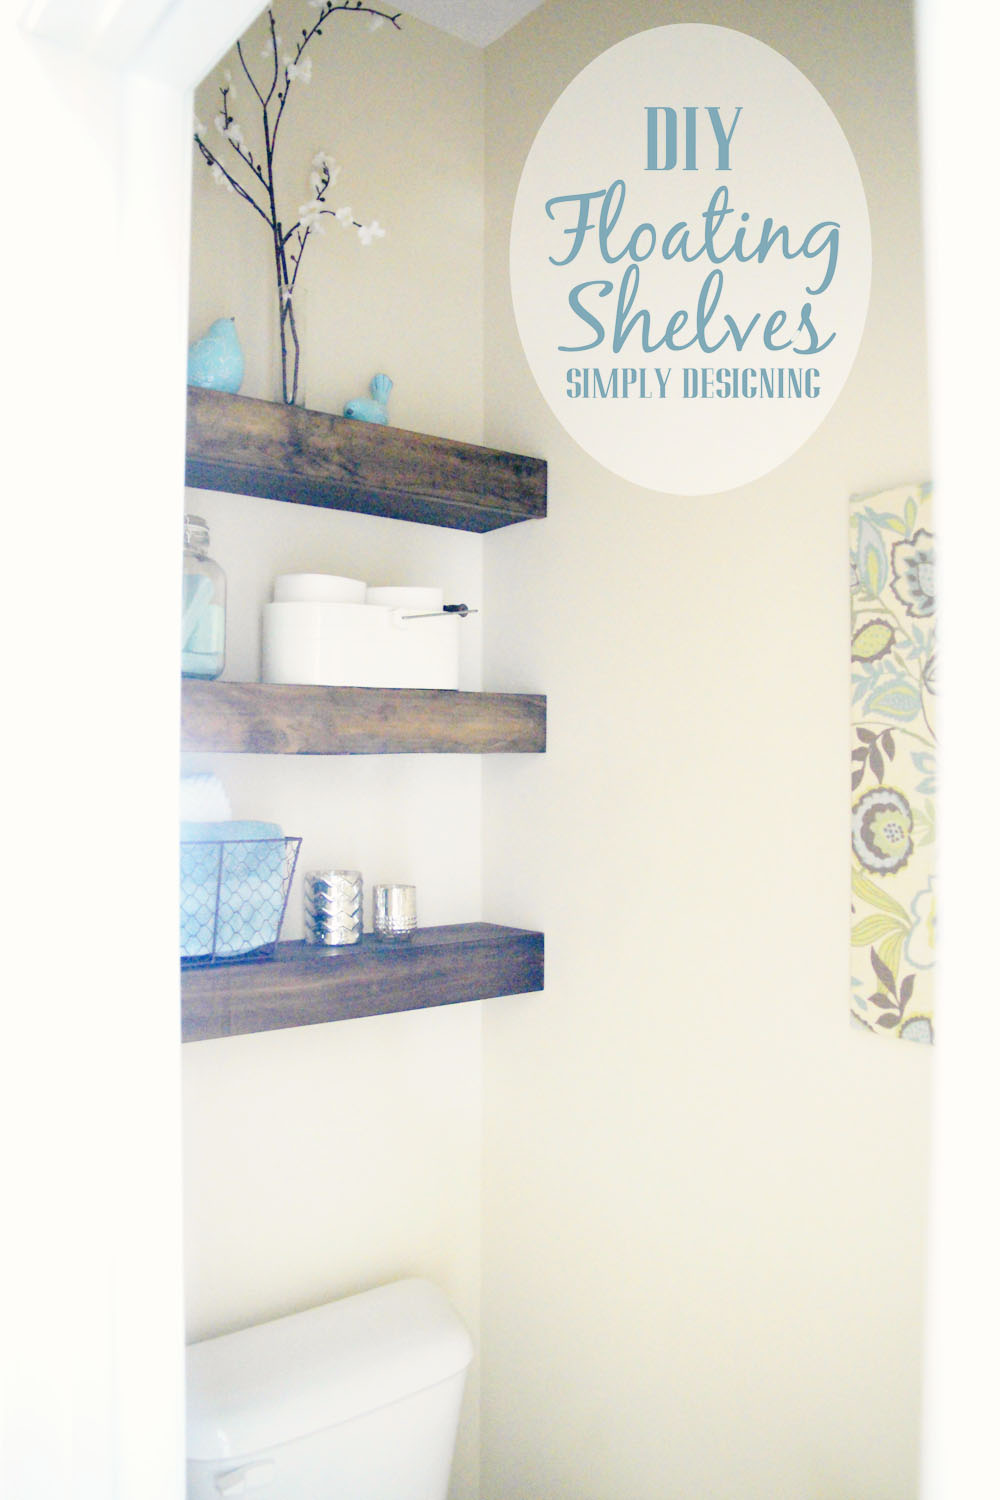 diy floating shelves how measure cut and install bathroom are really easy make they the perfect white head screws building vanity shelf decor garage wire shelving systems mounting